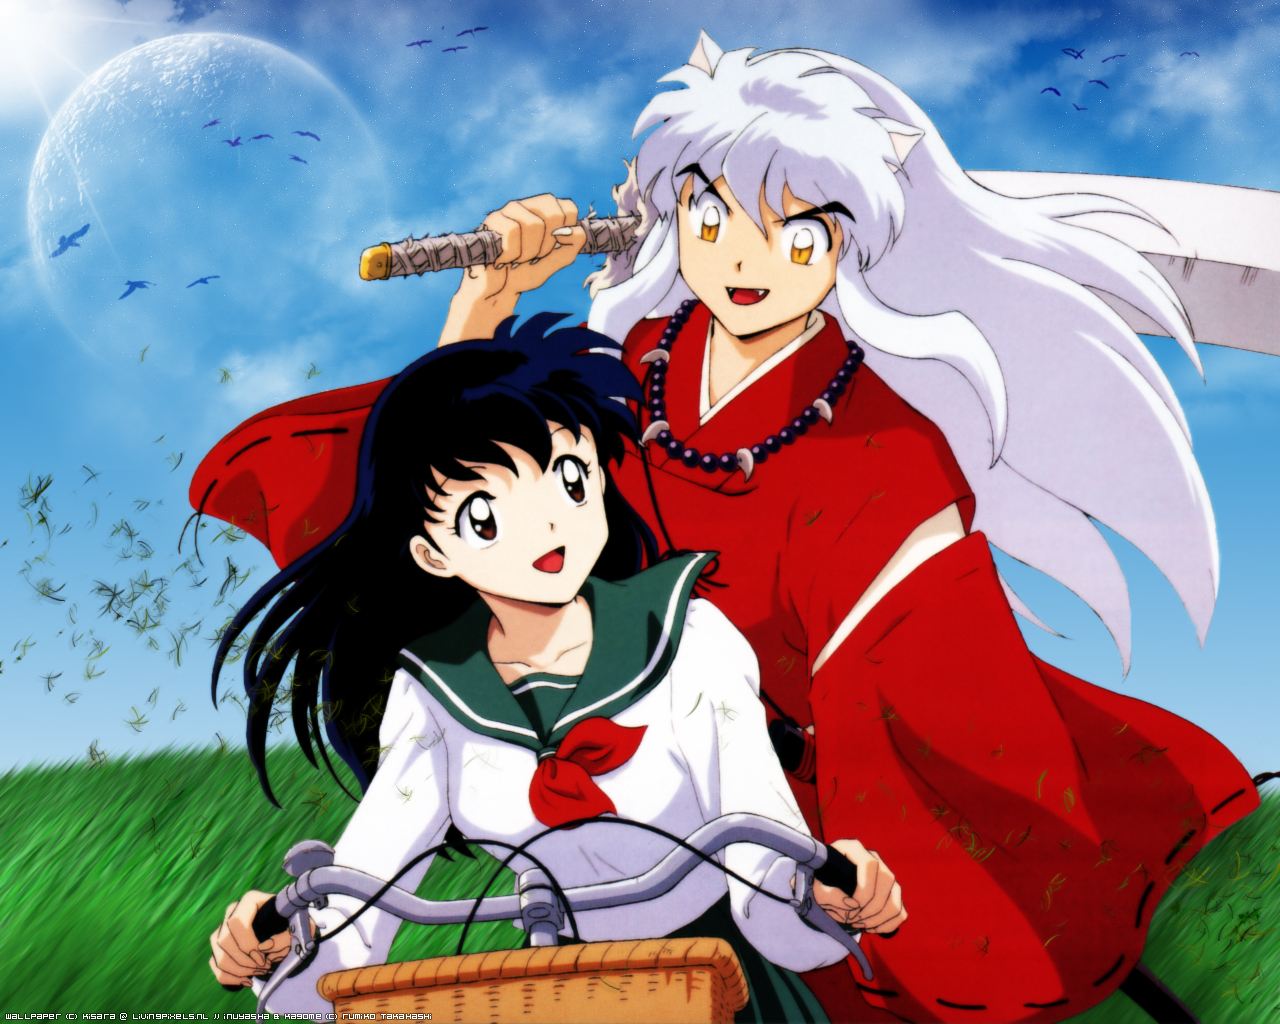 inuyasha-and-kagome-teen-picture-free-porn-videos-dolls